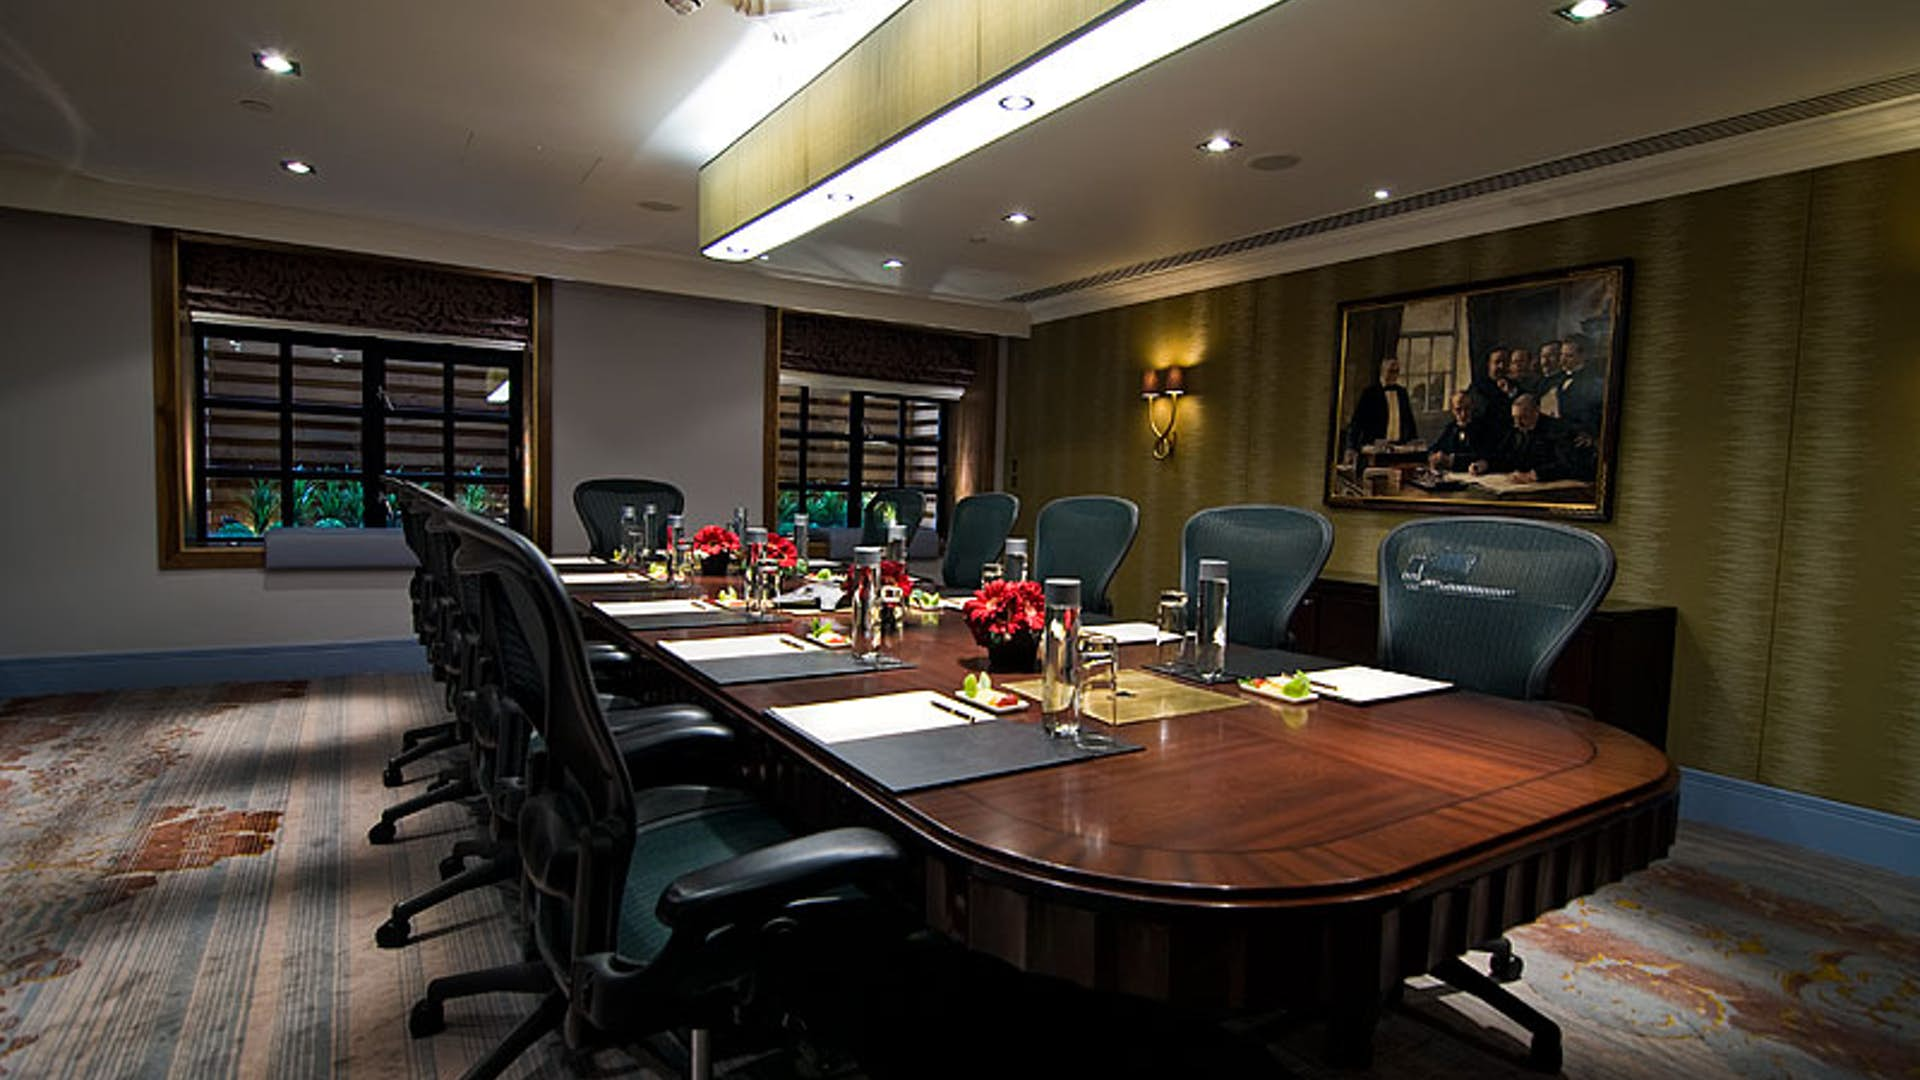 Boardroom setup in a meeting room at Sofitel St James